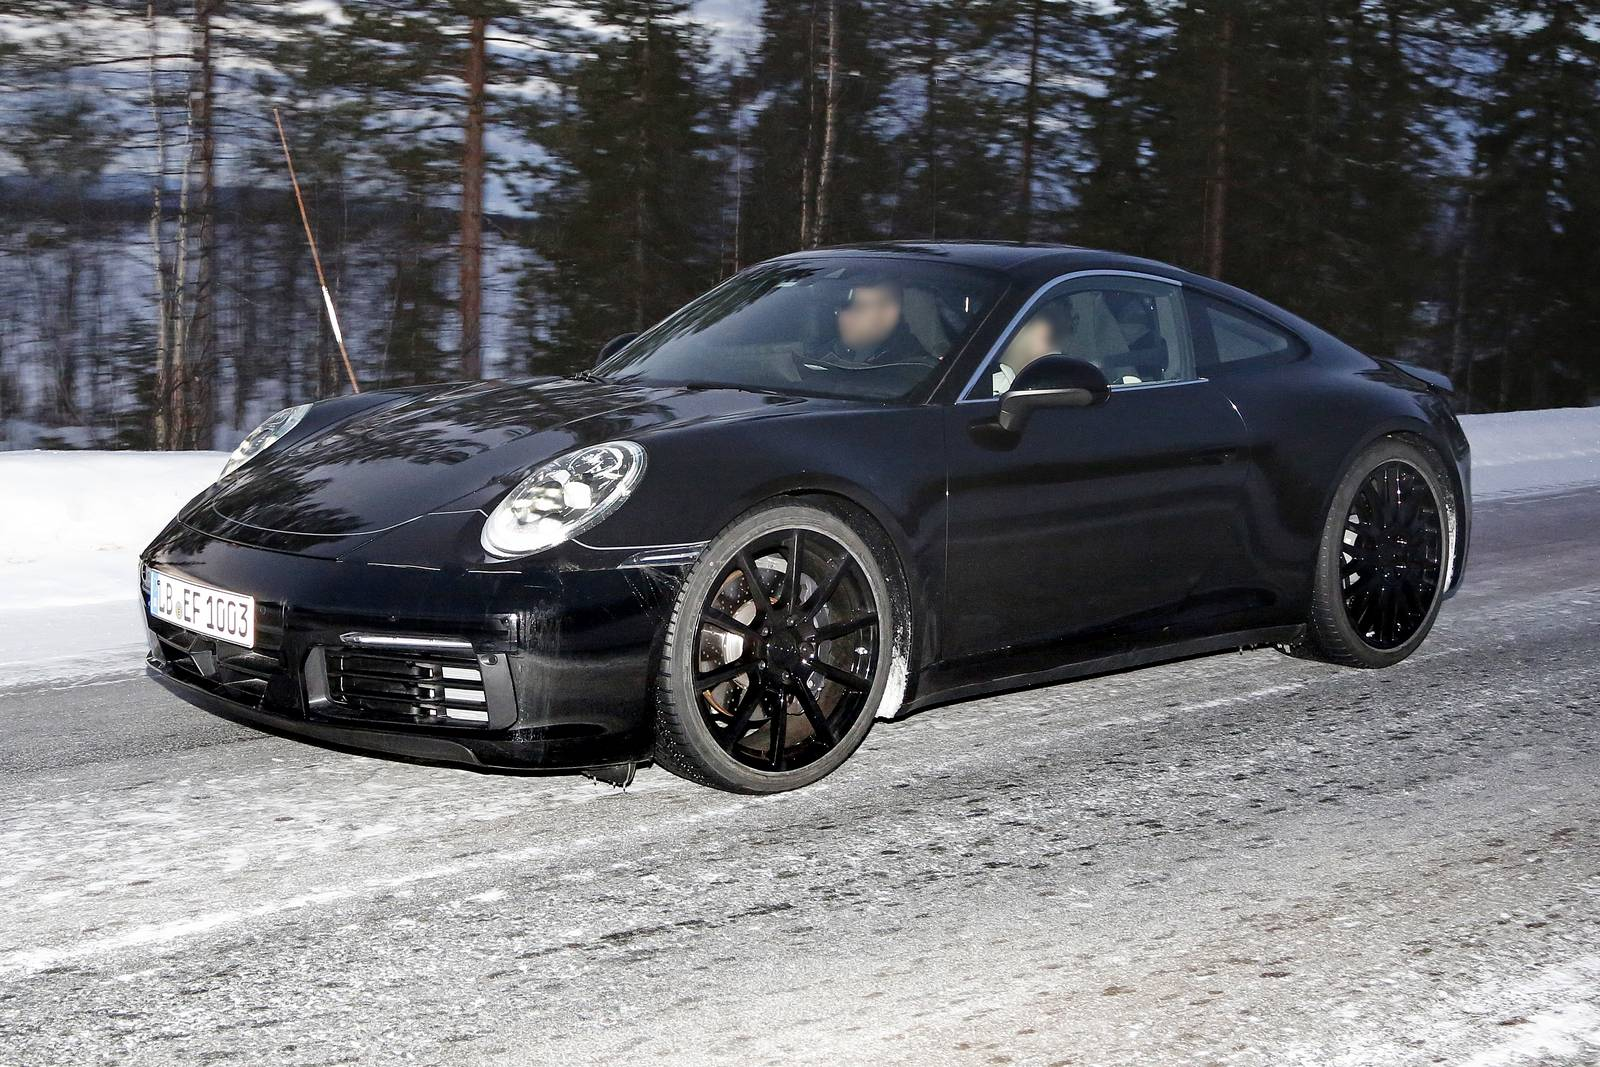 2019 Porsche 911 Turbo S >> Spy Shots: 8th Gen 2019 Porsche 911 Type 992 - All Turbo Including GT3 - GTspirit